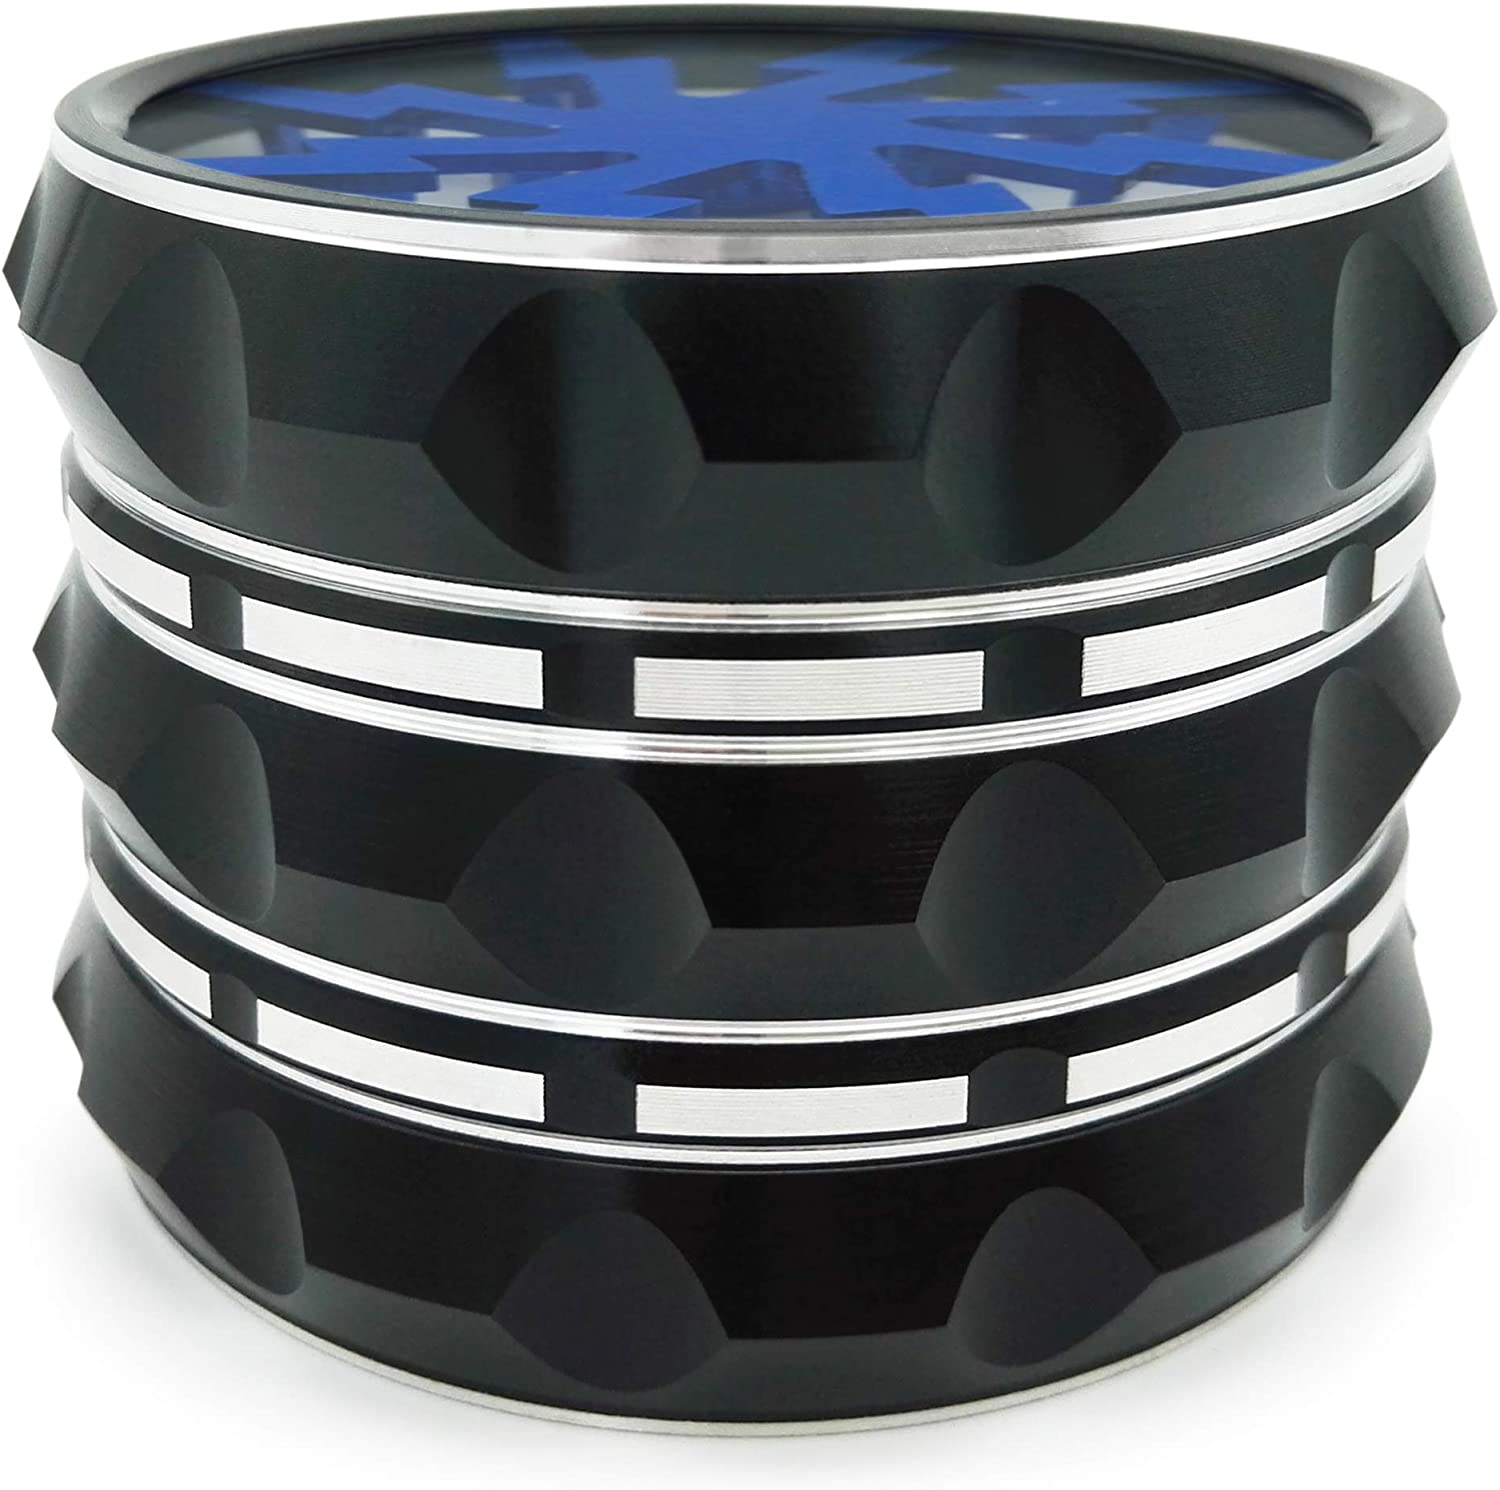 Quality Aluminium Herb Grinder By Fengli 2.5/'/' Large 4-part Spice Herb Grinder with Pollen Screen,Blue